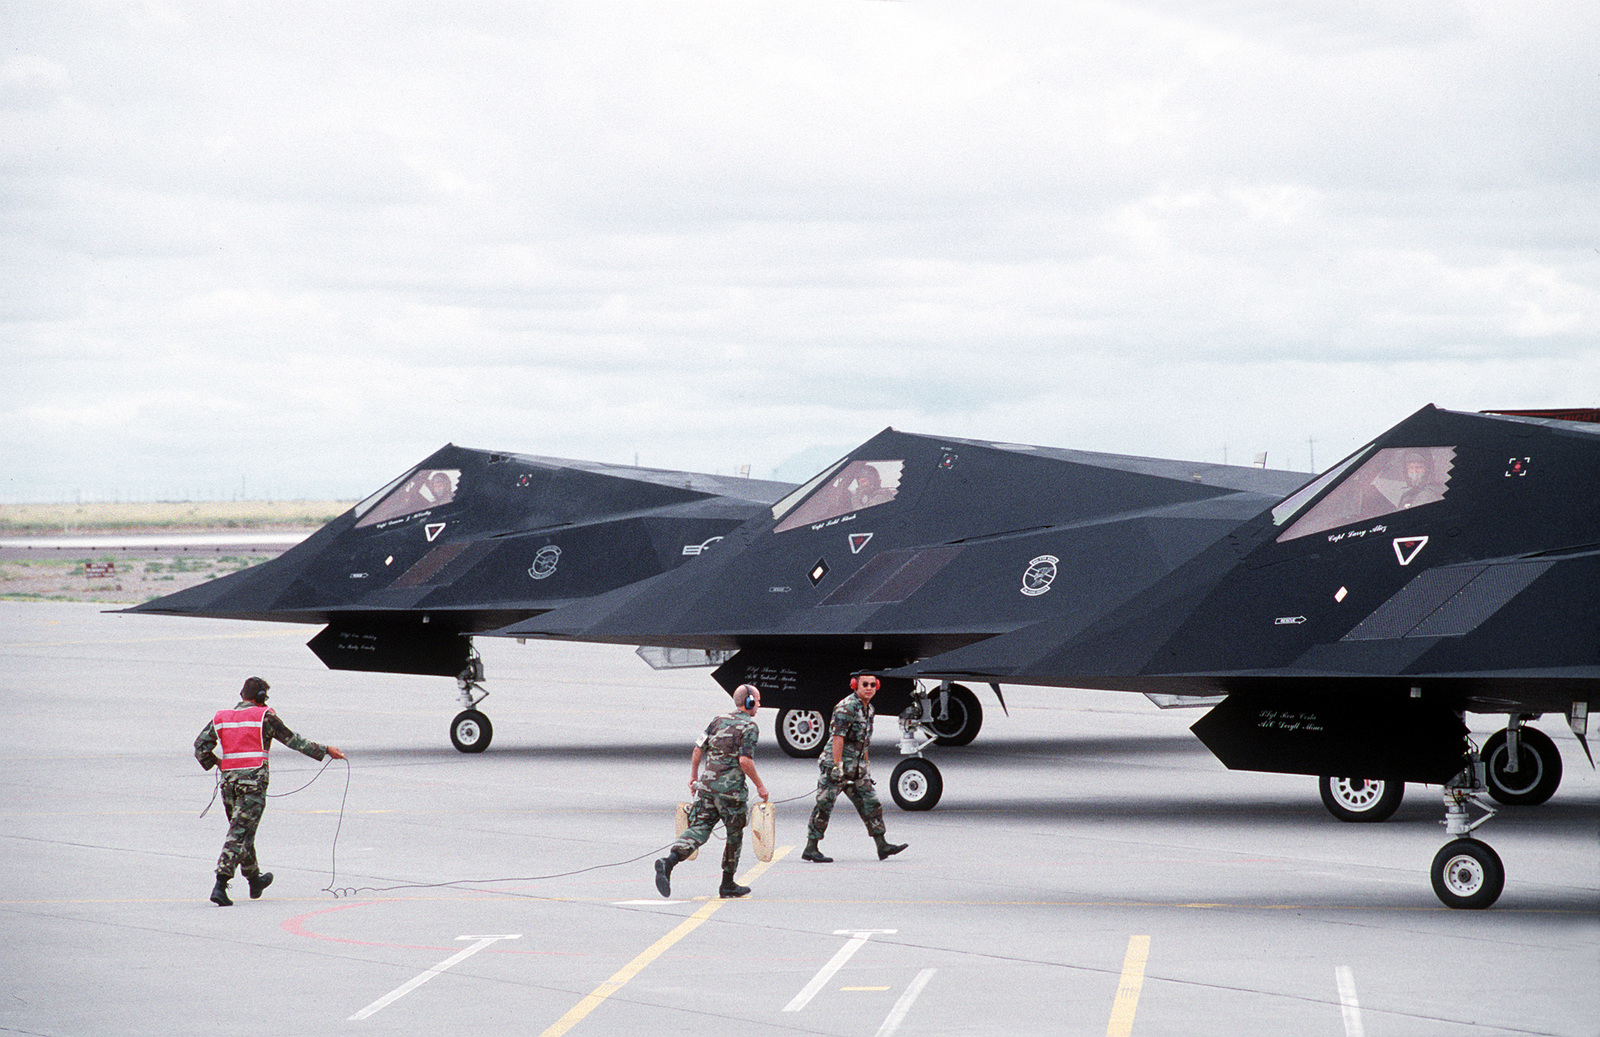 Ground crews prepare to launch F-117 Stealth Fighters from Holloman Air Force Base, N.M. at the direction of the Secretary of Defense, William Perry, in response to an Iraqi missile attack against two F-16s flying over the northern no-fly zone. The destination for the 49th Fighter Wing F-117 Nighthawks is Kuwait.Published in AIRMAN Magazine November 1996. Exact Date Shot Unknown